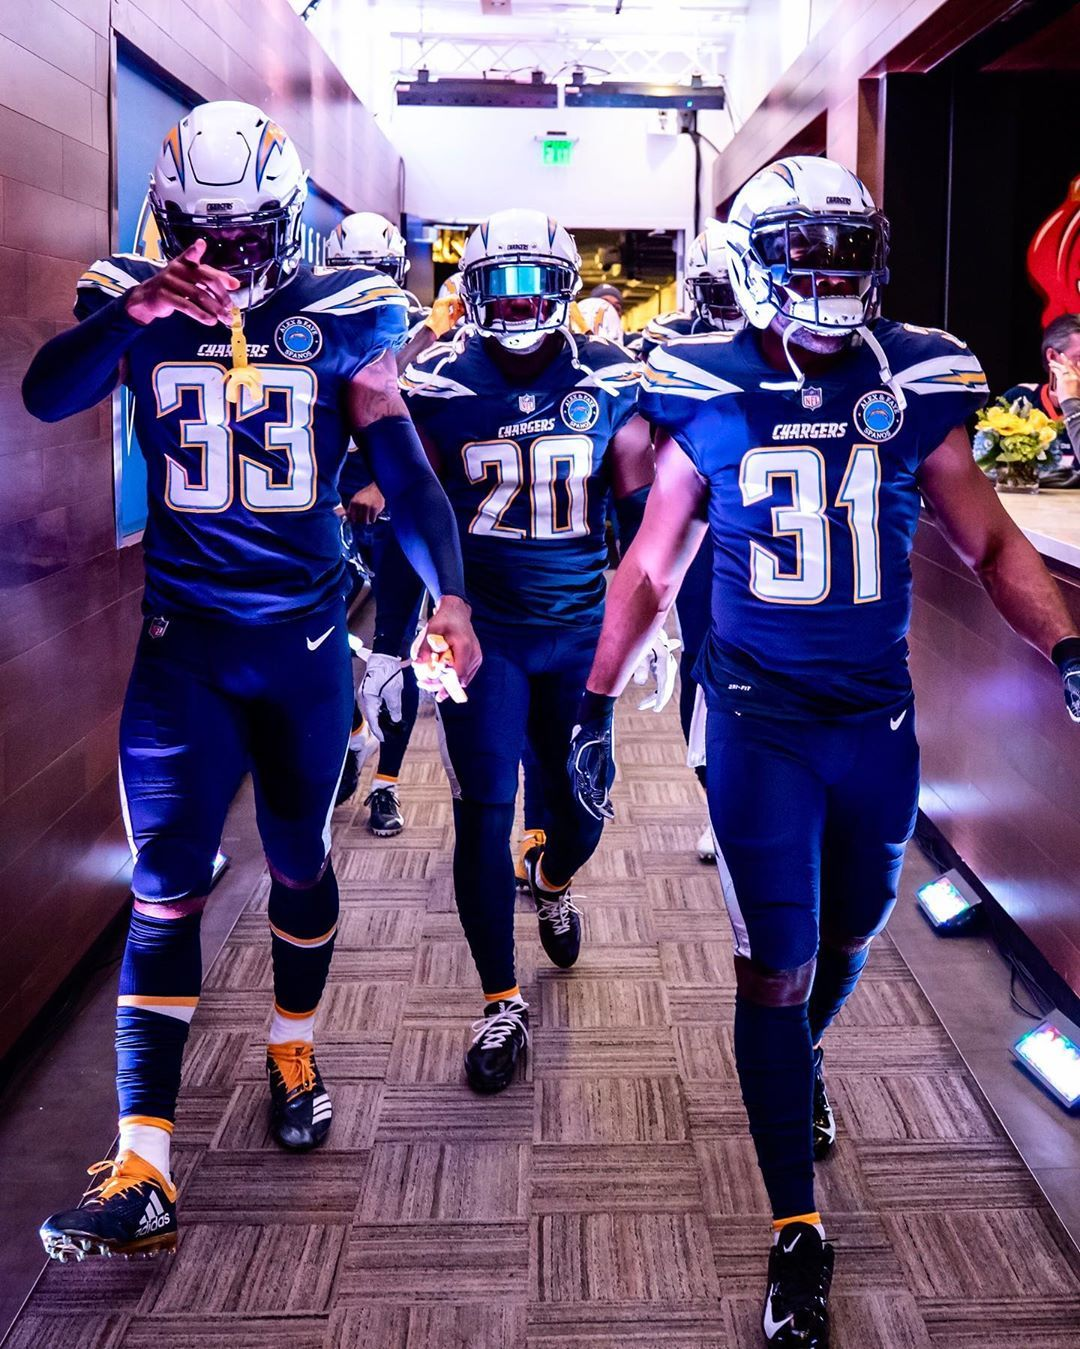 Los Angeles Chargers See Ya In 50 Days Colts Afc Afcwest Americanfootballconference America Nfl Outfits Los Angeles Chargers Chargers Football